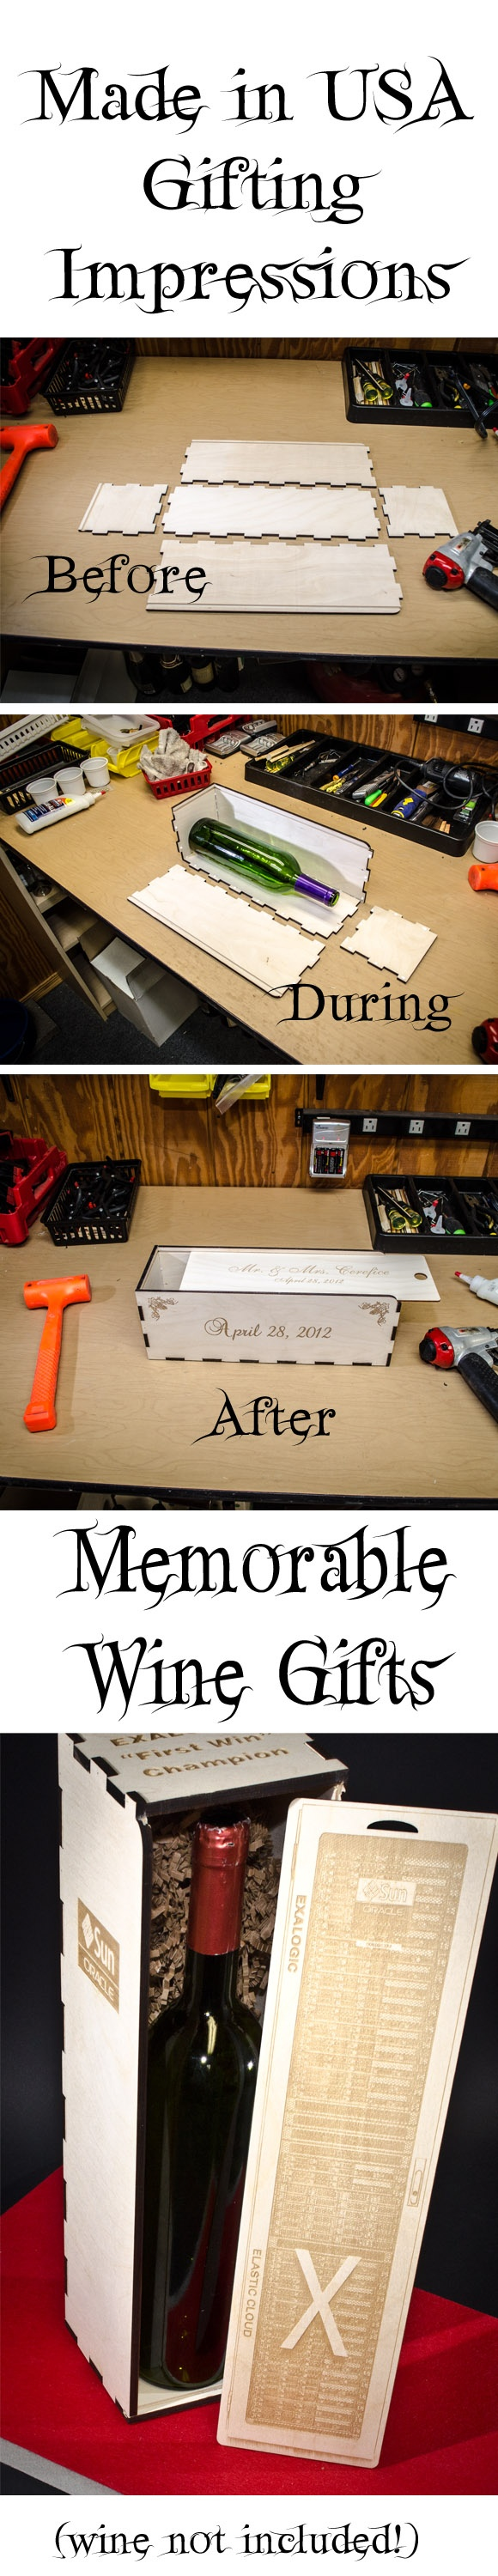 Stages of a Gift Box under construction - I laser engrave your greeting, their names, LOGOS, photos, and anything else you desire to last after the wine gift is enjoyed... prices from $45 (plus shipping) includes all design and production - minimum purchase is 1.